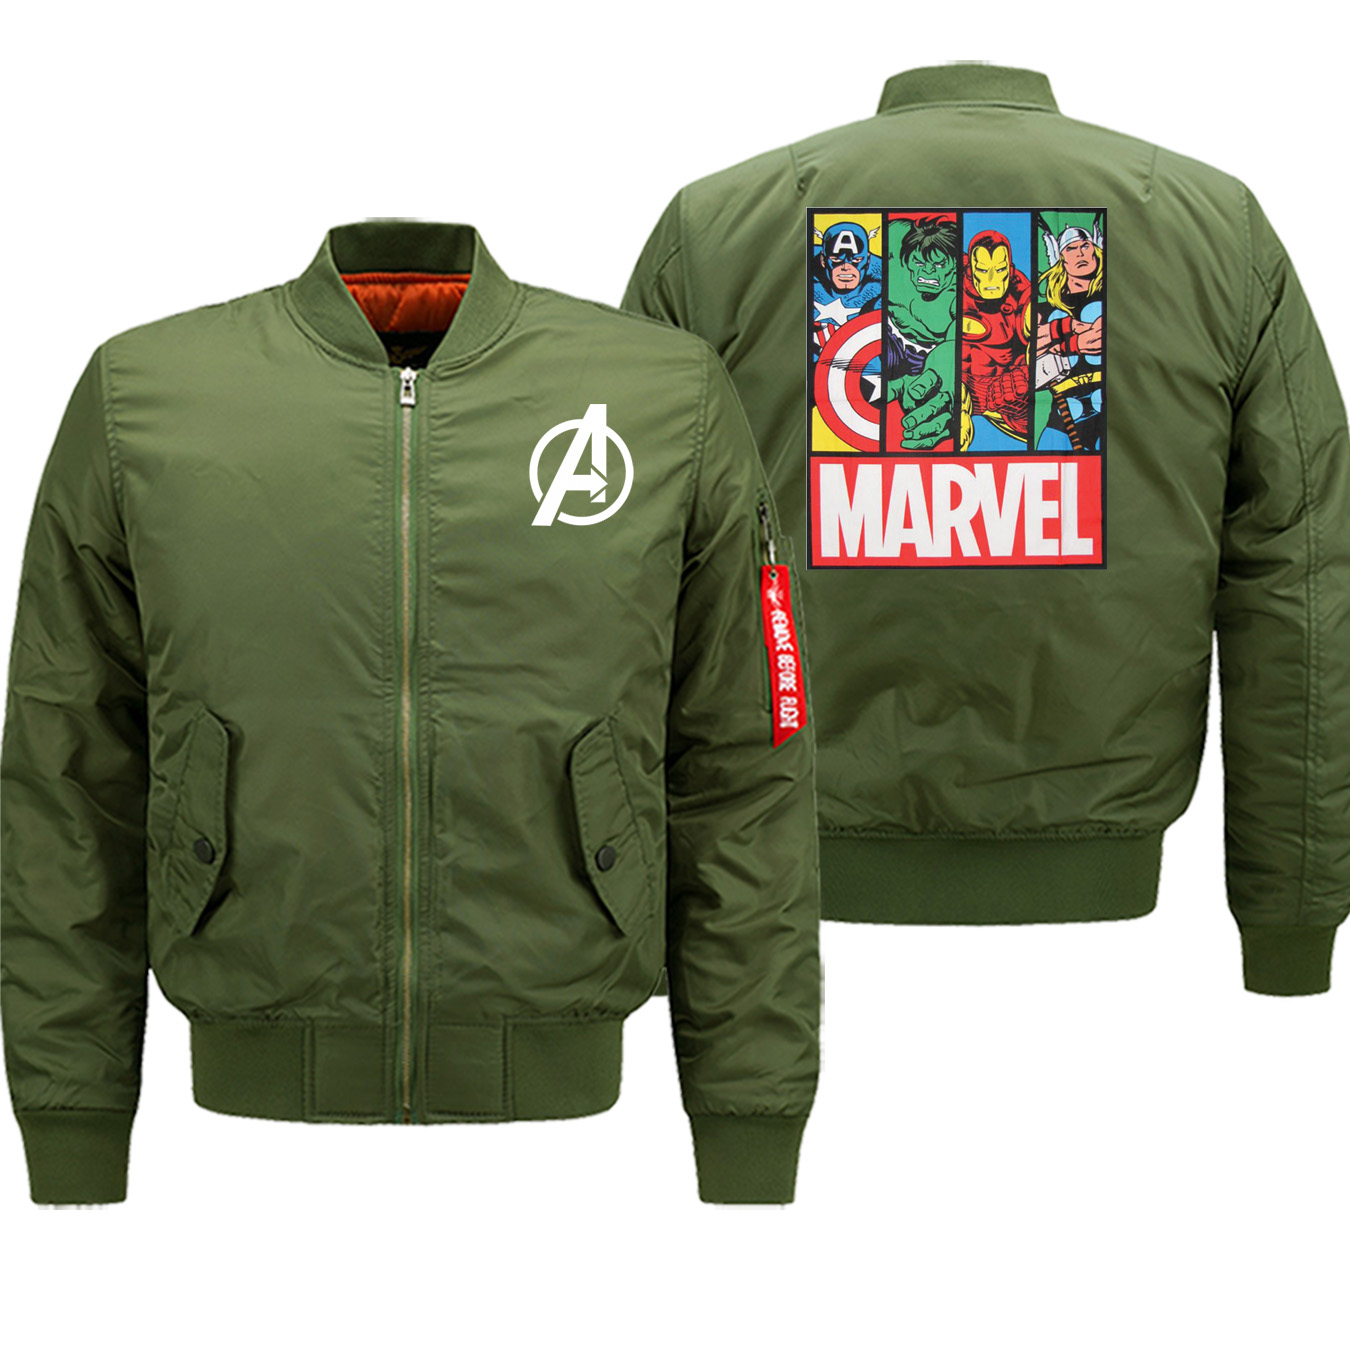 Winter Hot Sale Coat Thick Marvel The Avengers Men Jackets Streetwear Fashion Bomber Zipper Military Casual Jacket Motorcycle